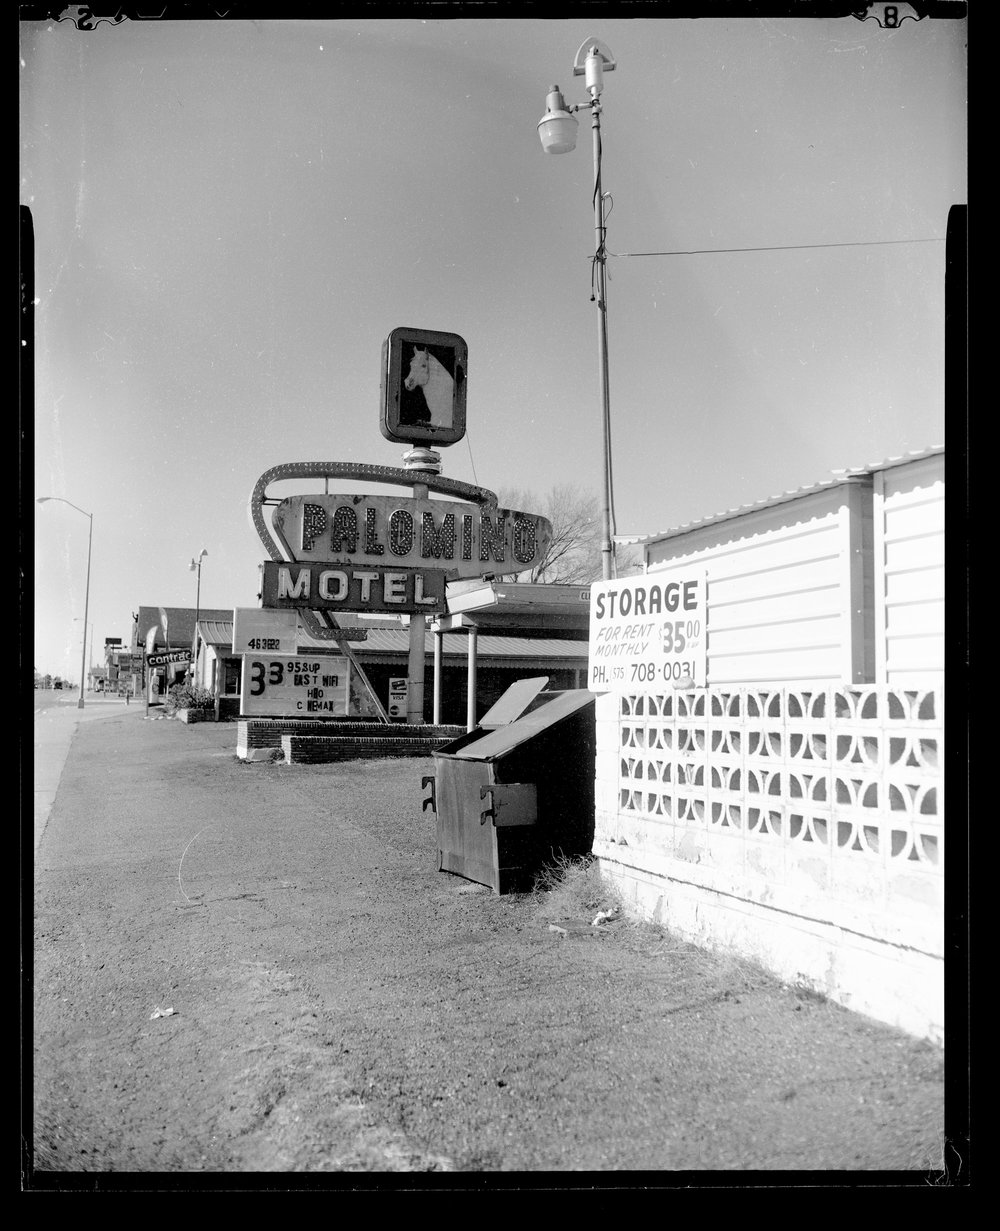 The Palomino Hotel, Tucumcari, NM. CAMERADACTYL OG 4x5, Expired (1992) Plus-X, Kodak Ektar 127mm